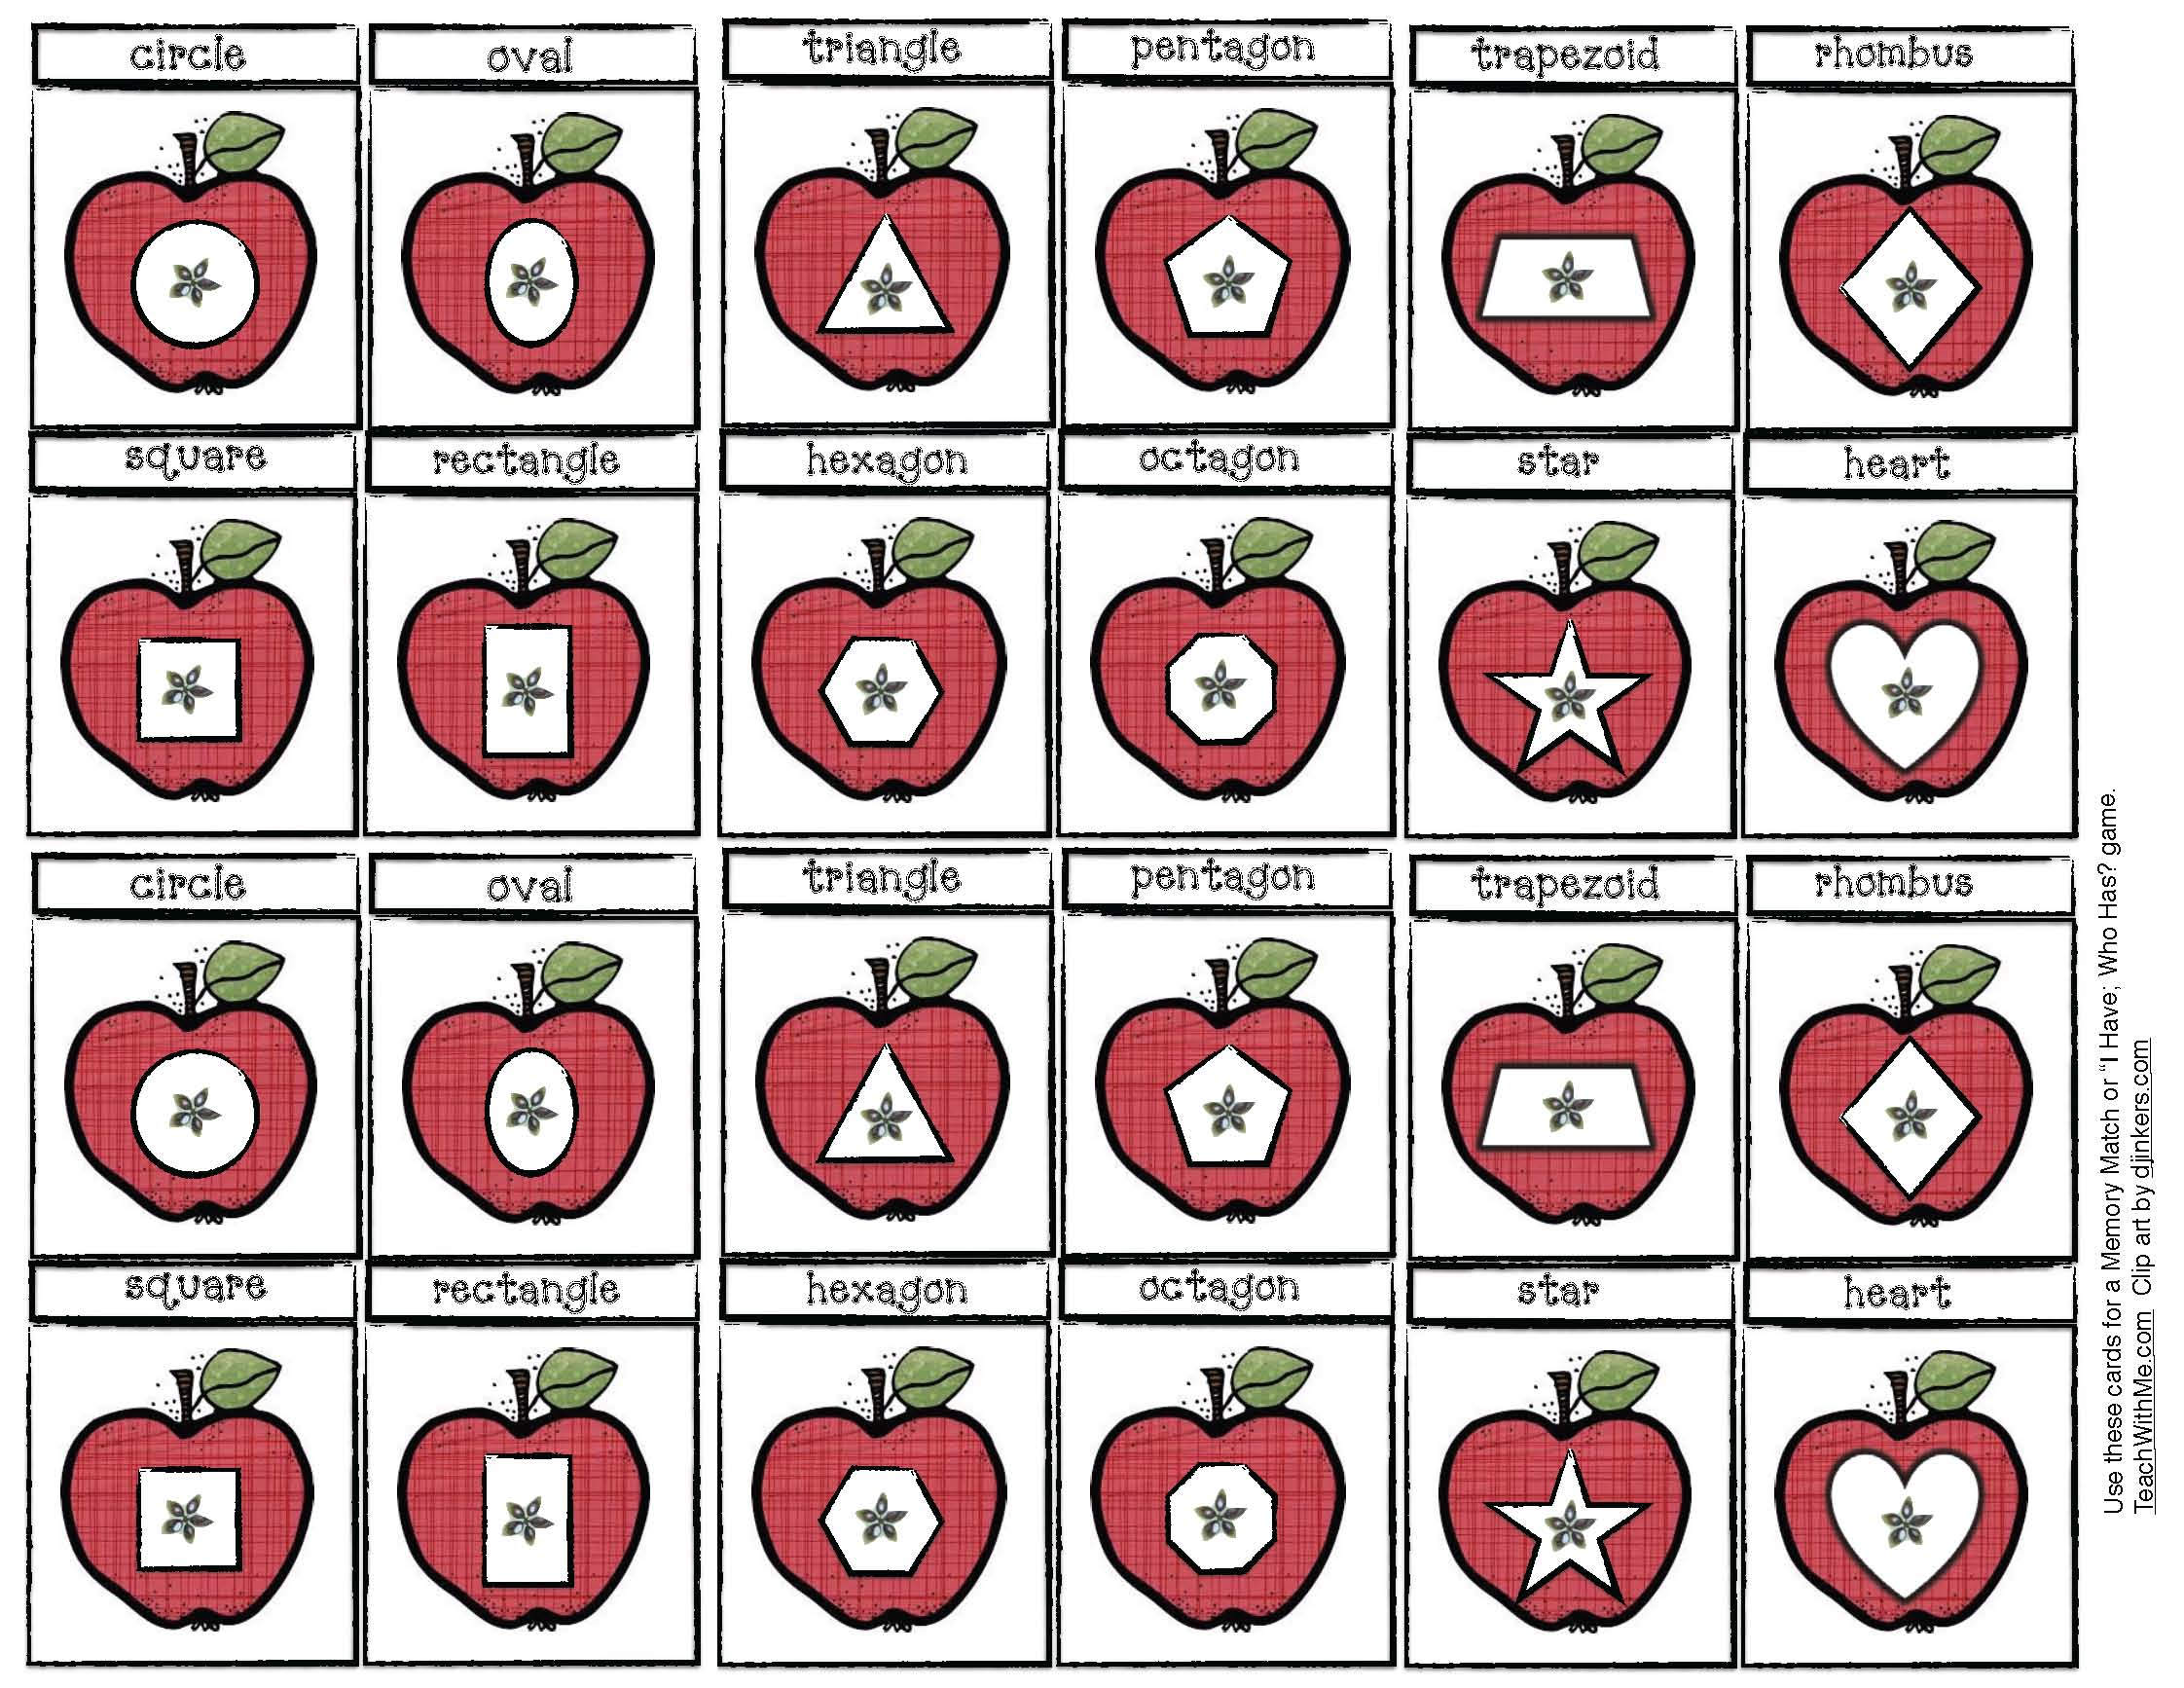 jonny appleseed activities, johnny appleseed, apples, apple activities, shape activities, apple games, shape games,